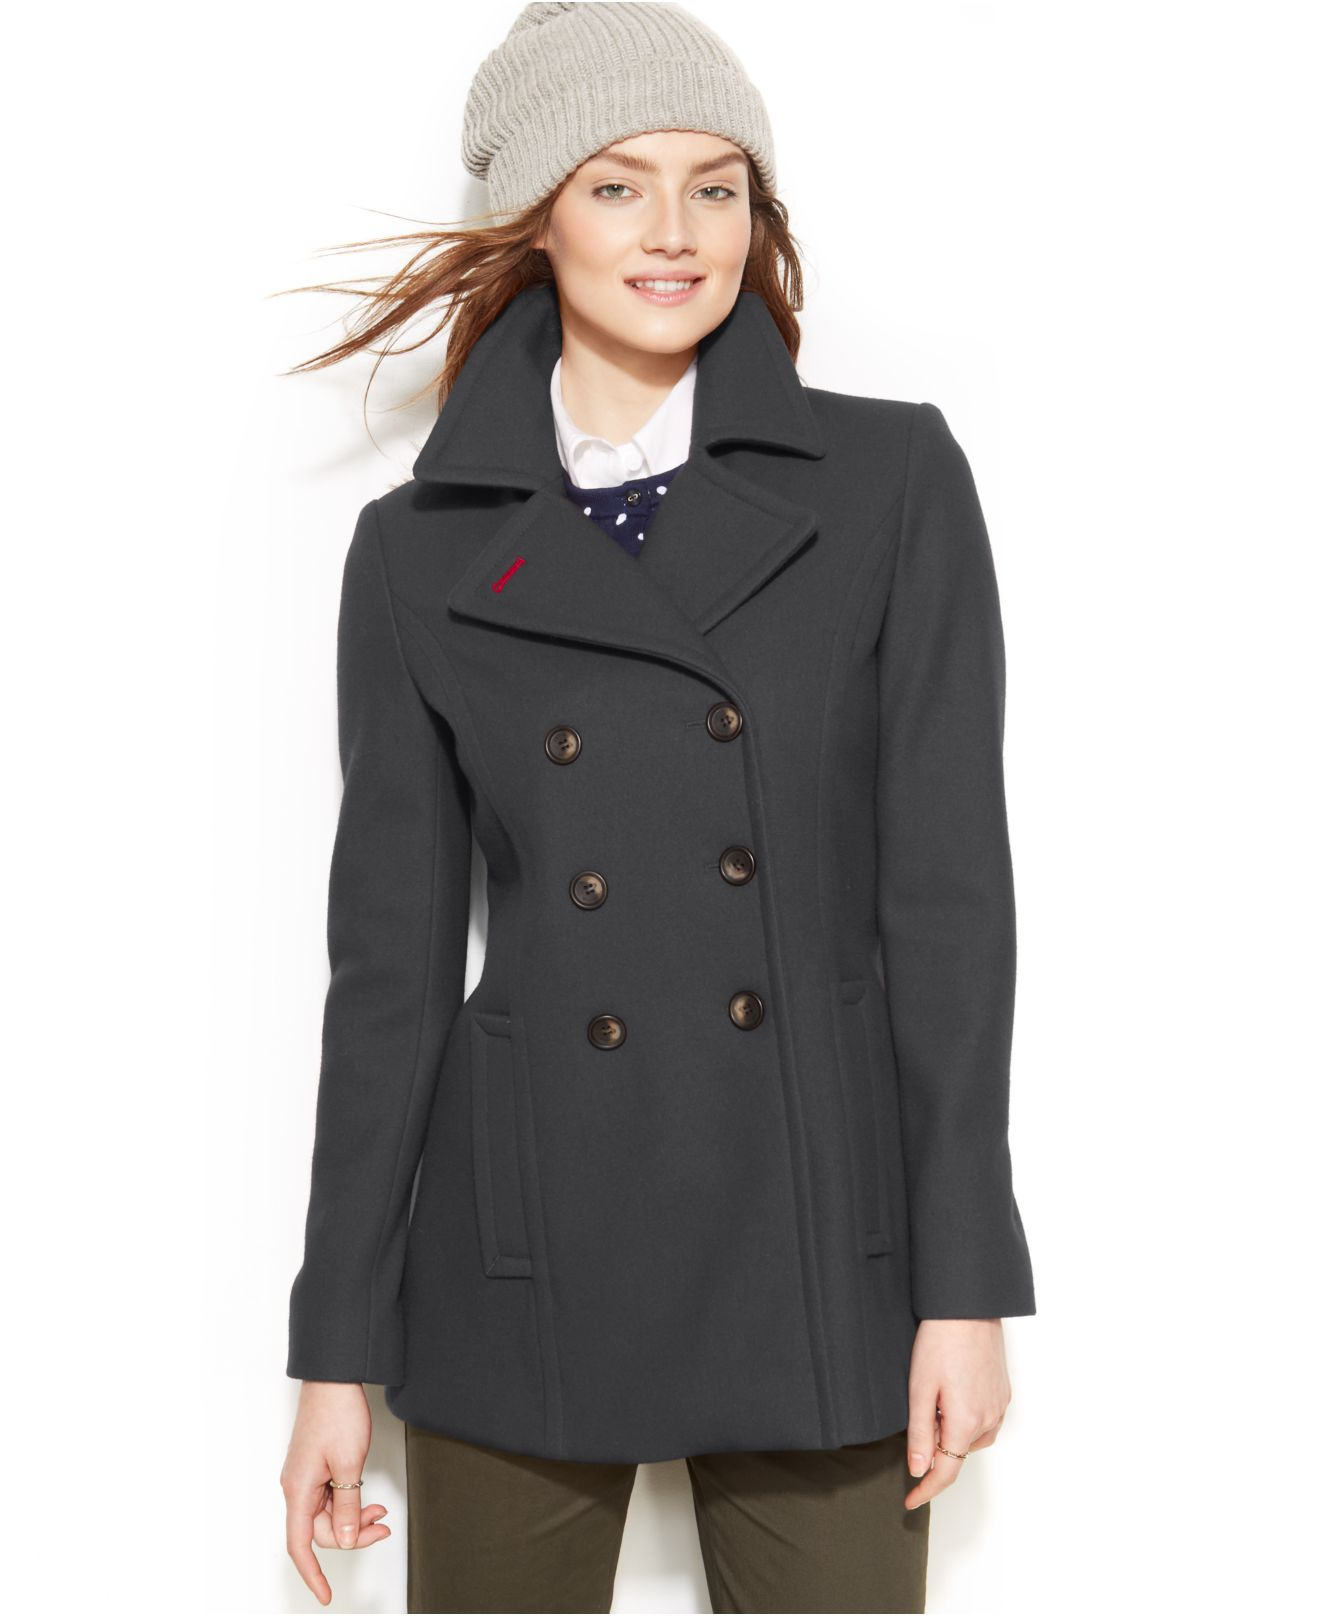 Womens Gray Pea Coat - Tradingbasis